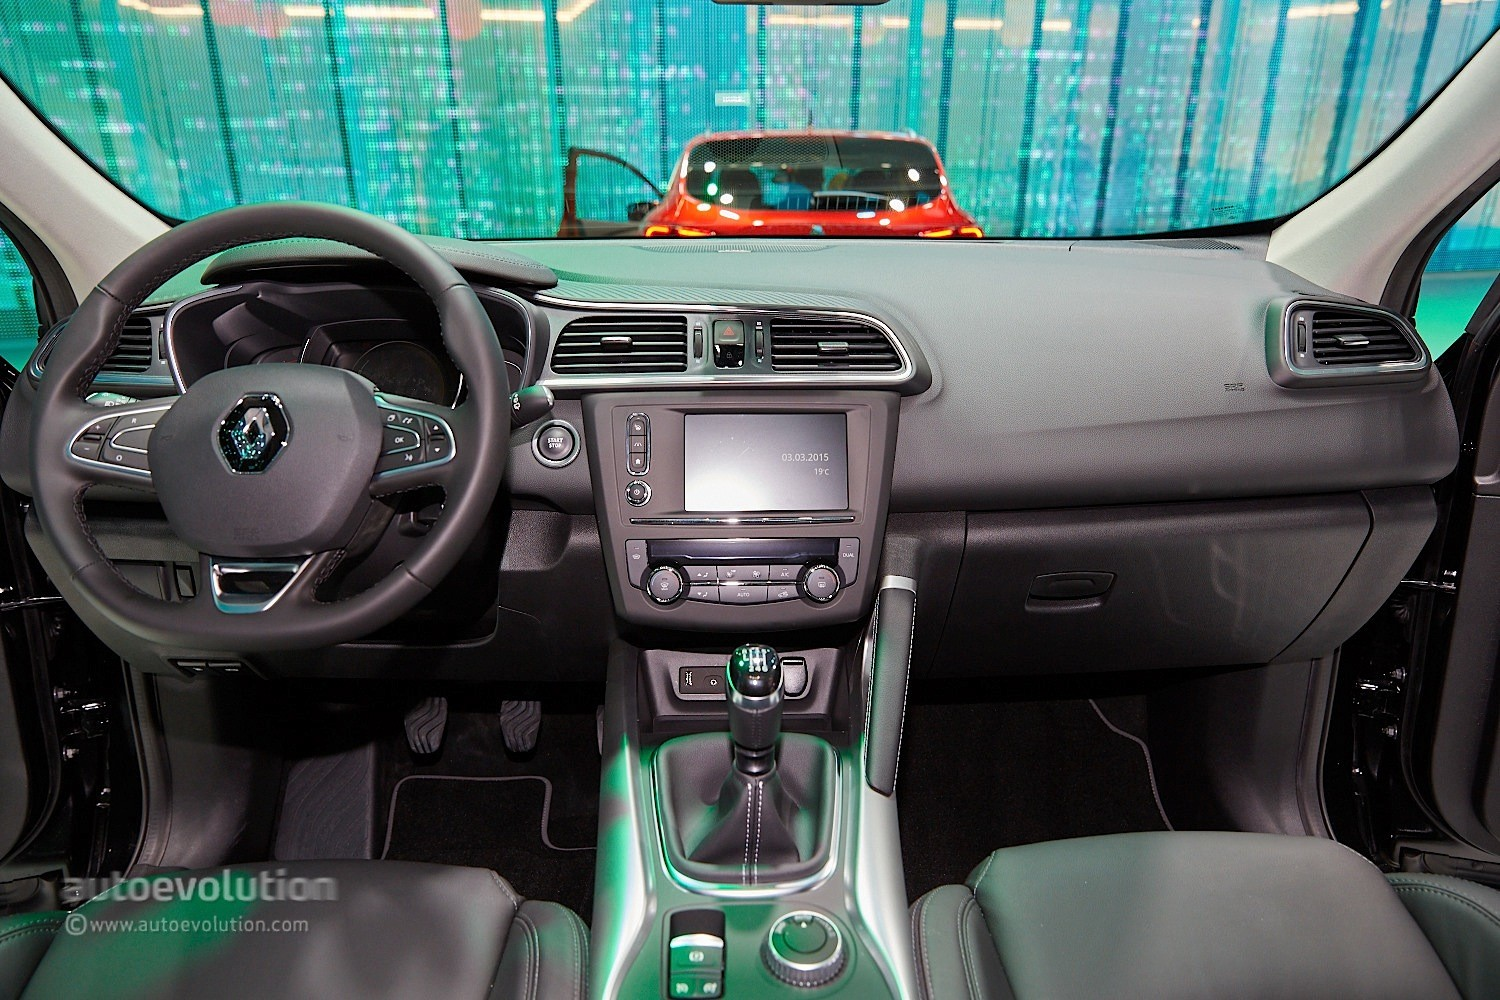 New renault megane interior new cars review for Interior images